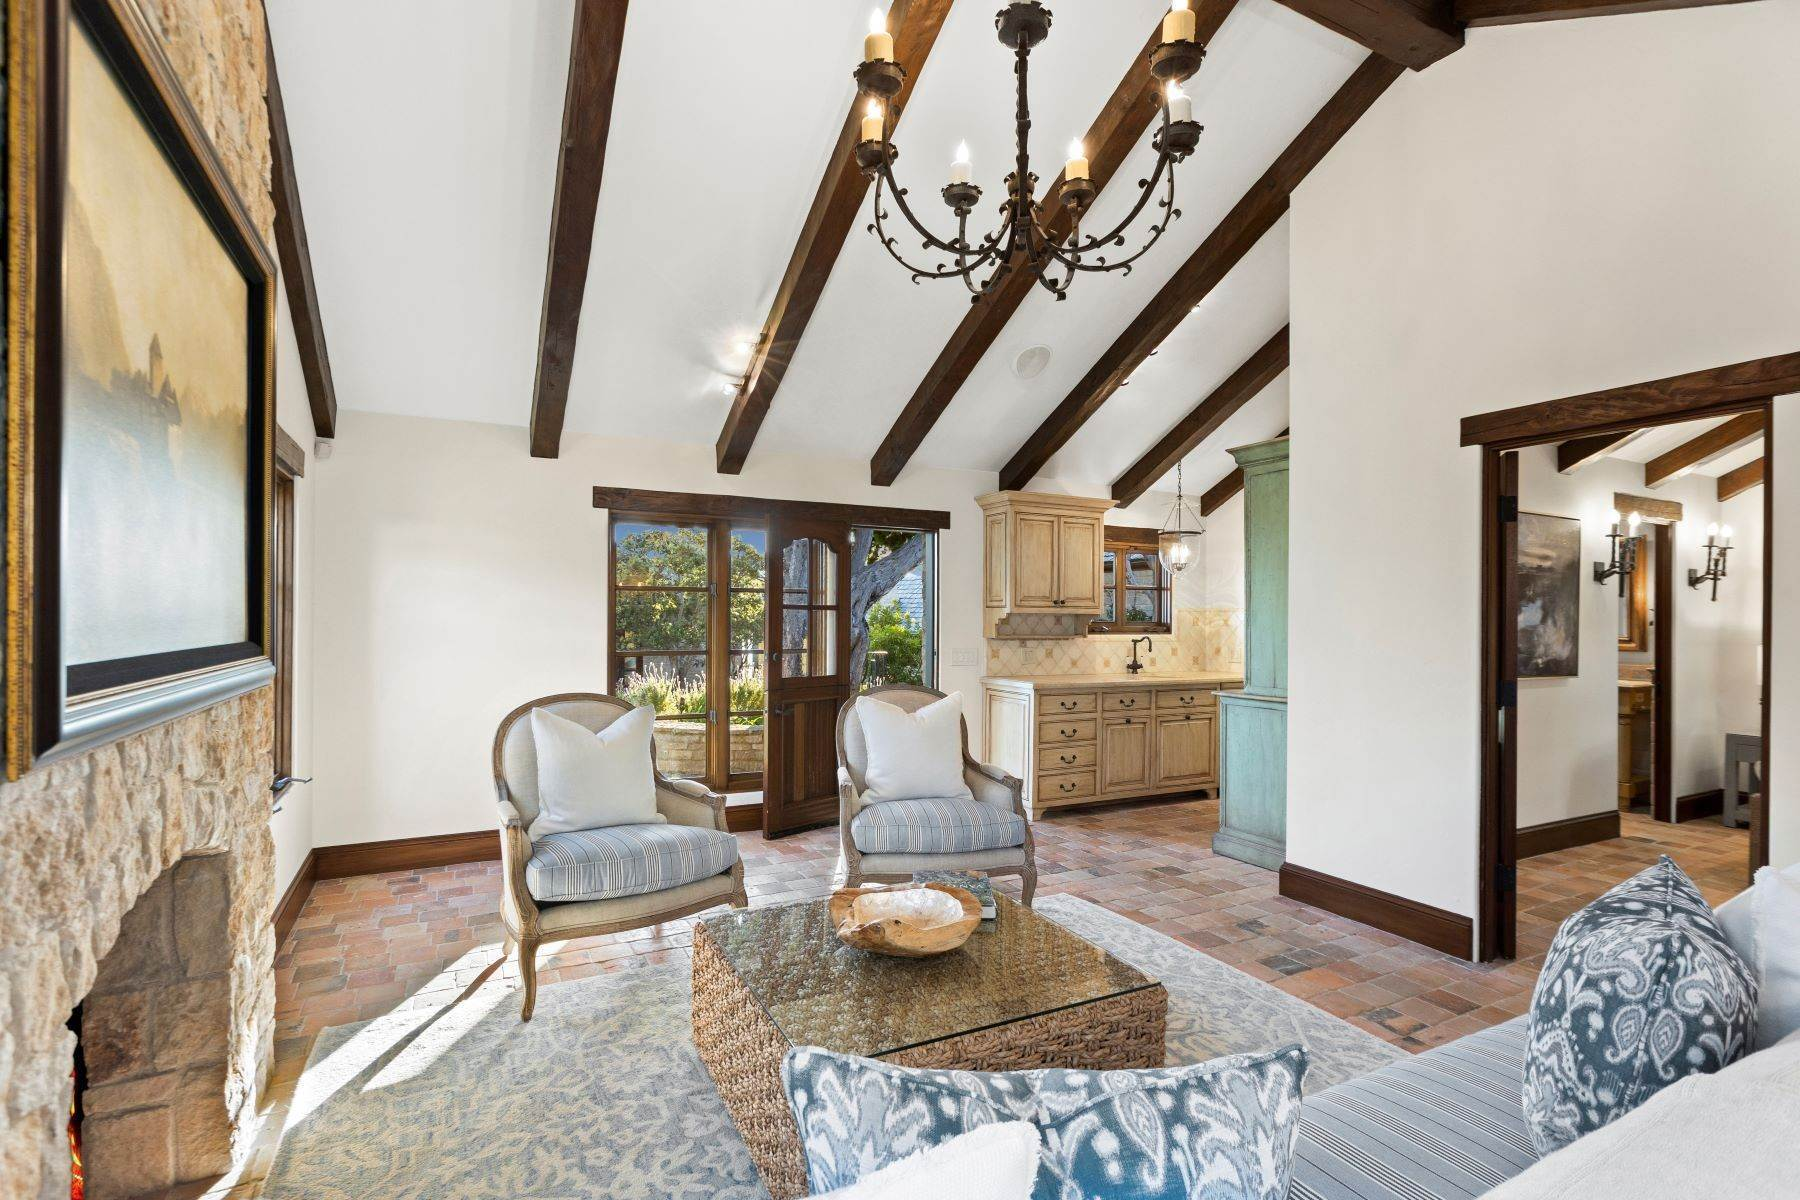 11. Single Family Homes for Sale at 31521 Bluff Drive Laguna Beach, California 92651 United States